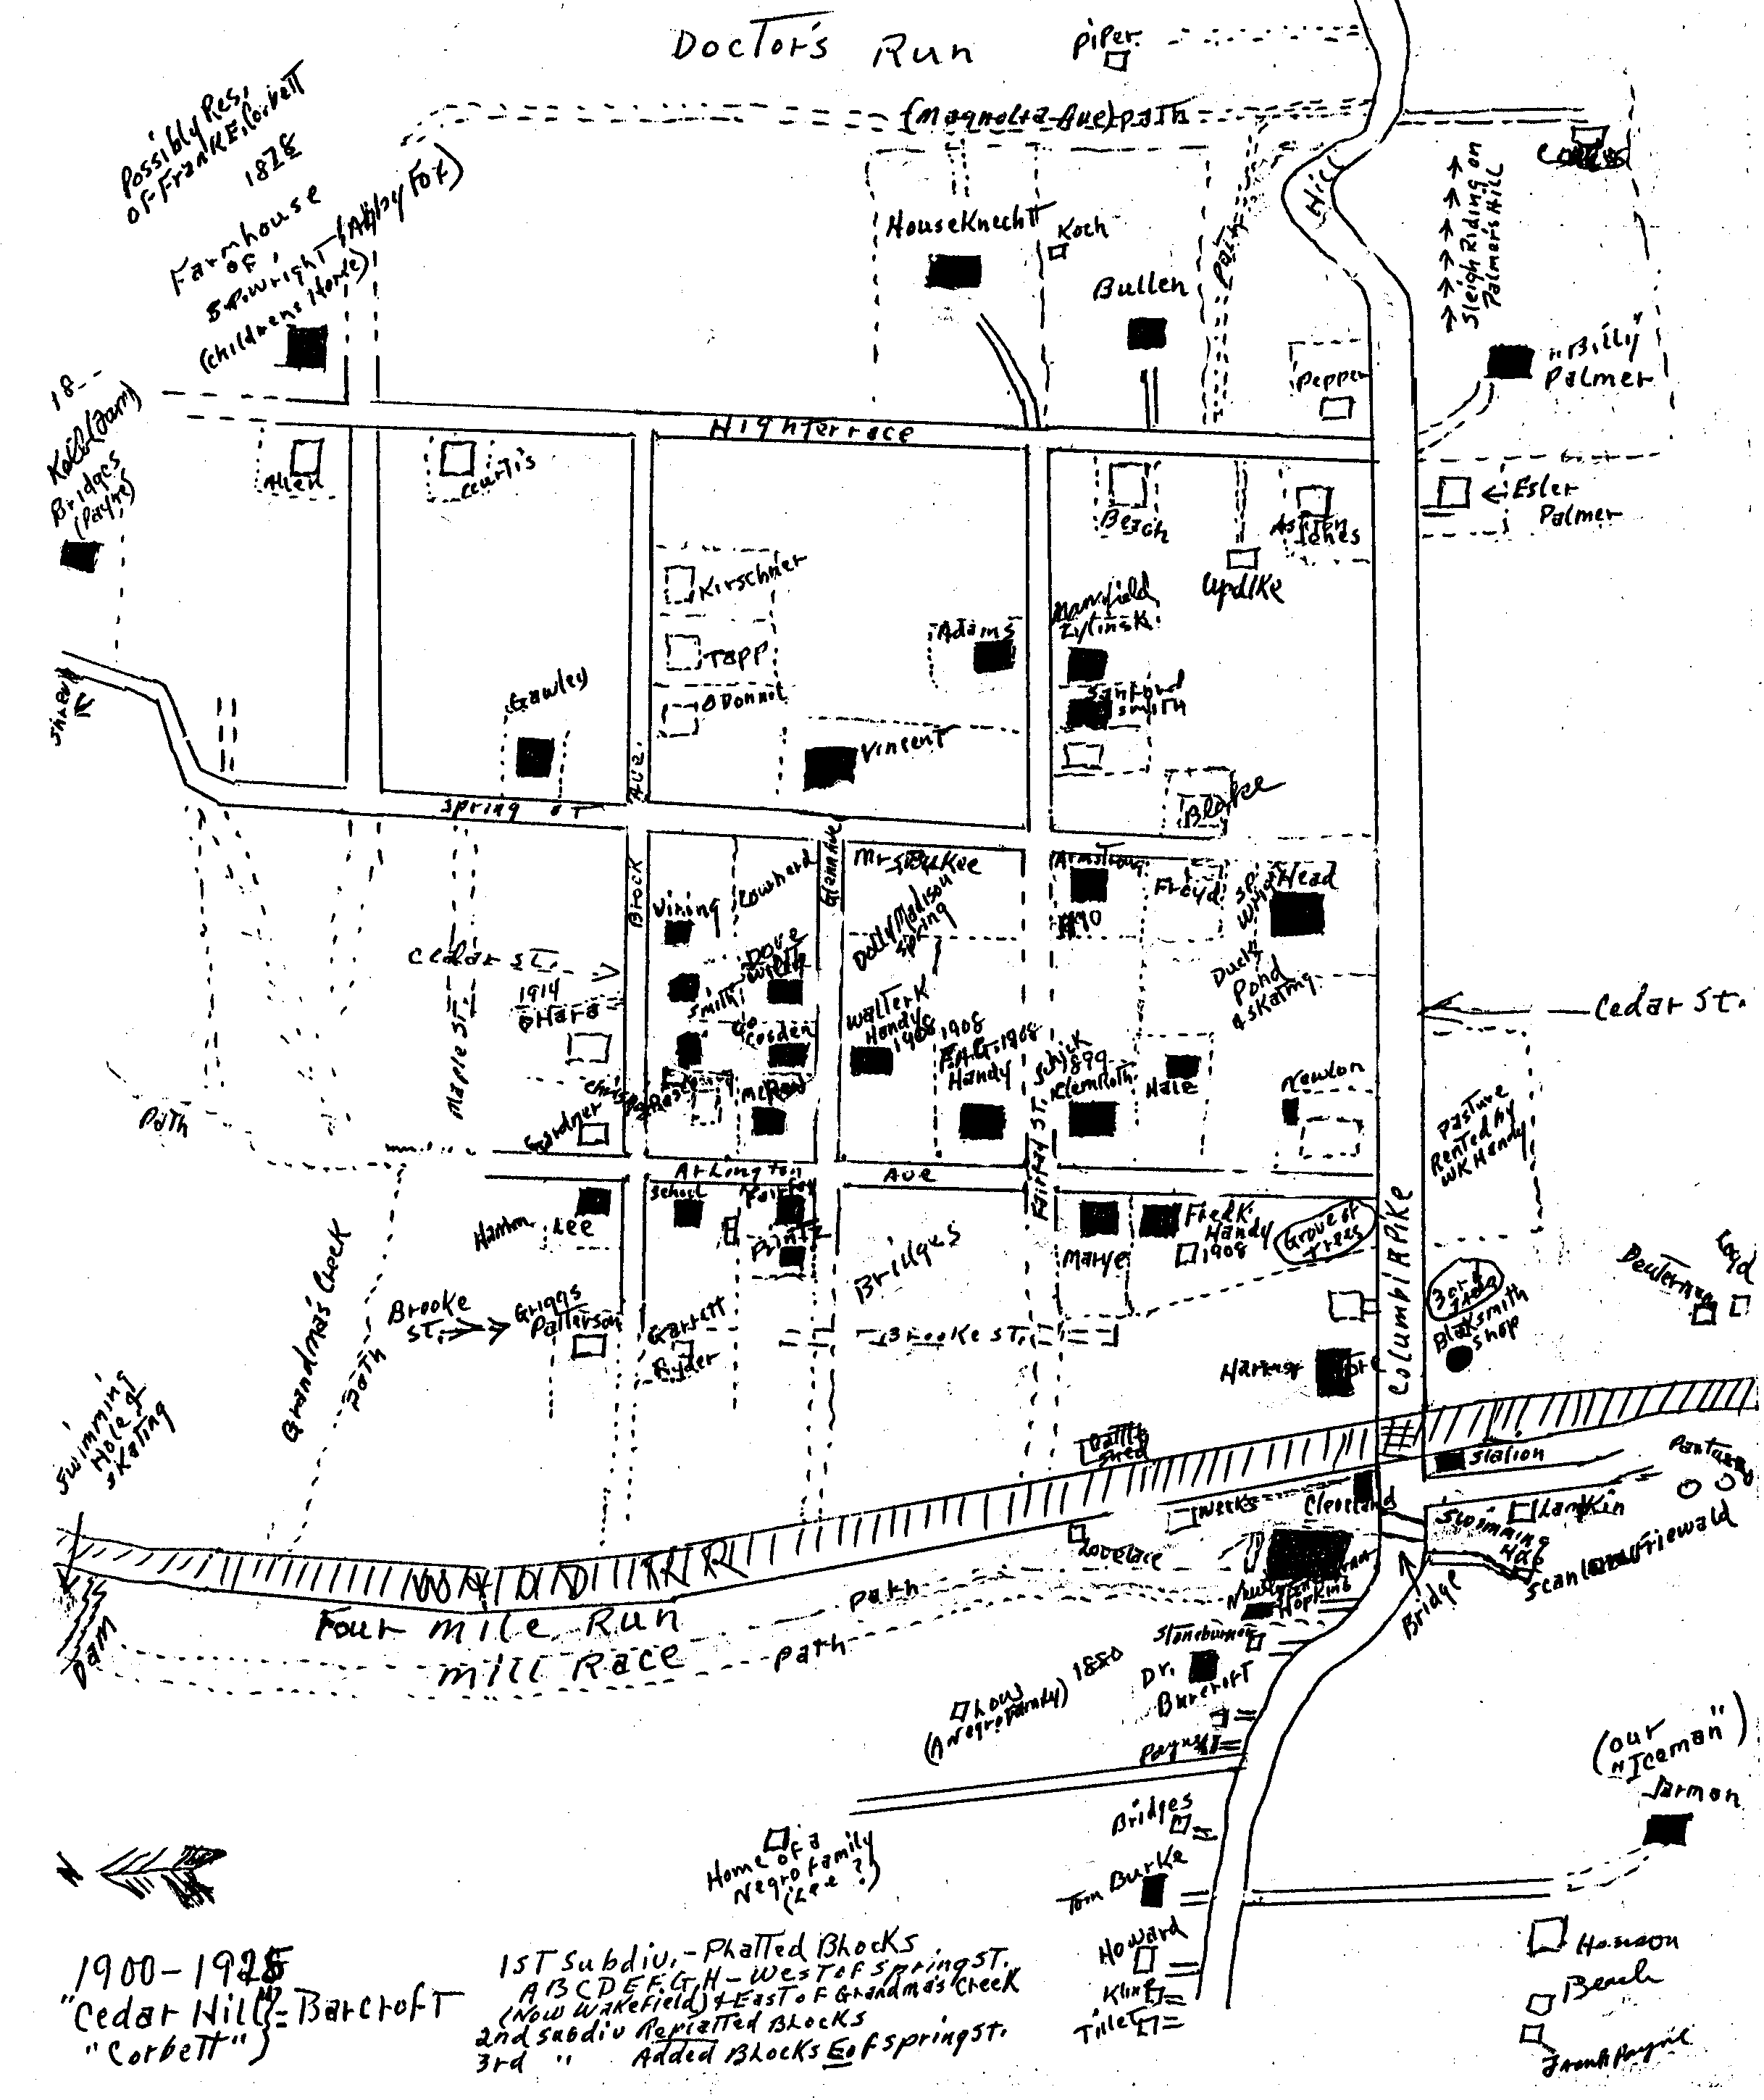 Click map to enlarge.